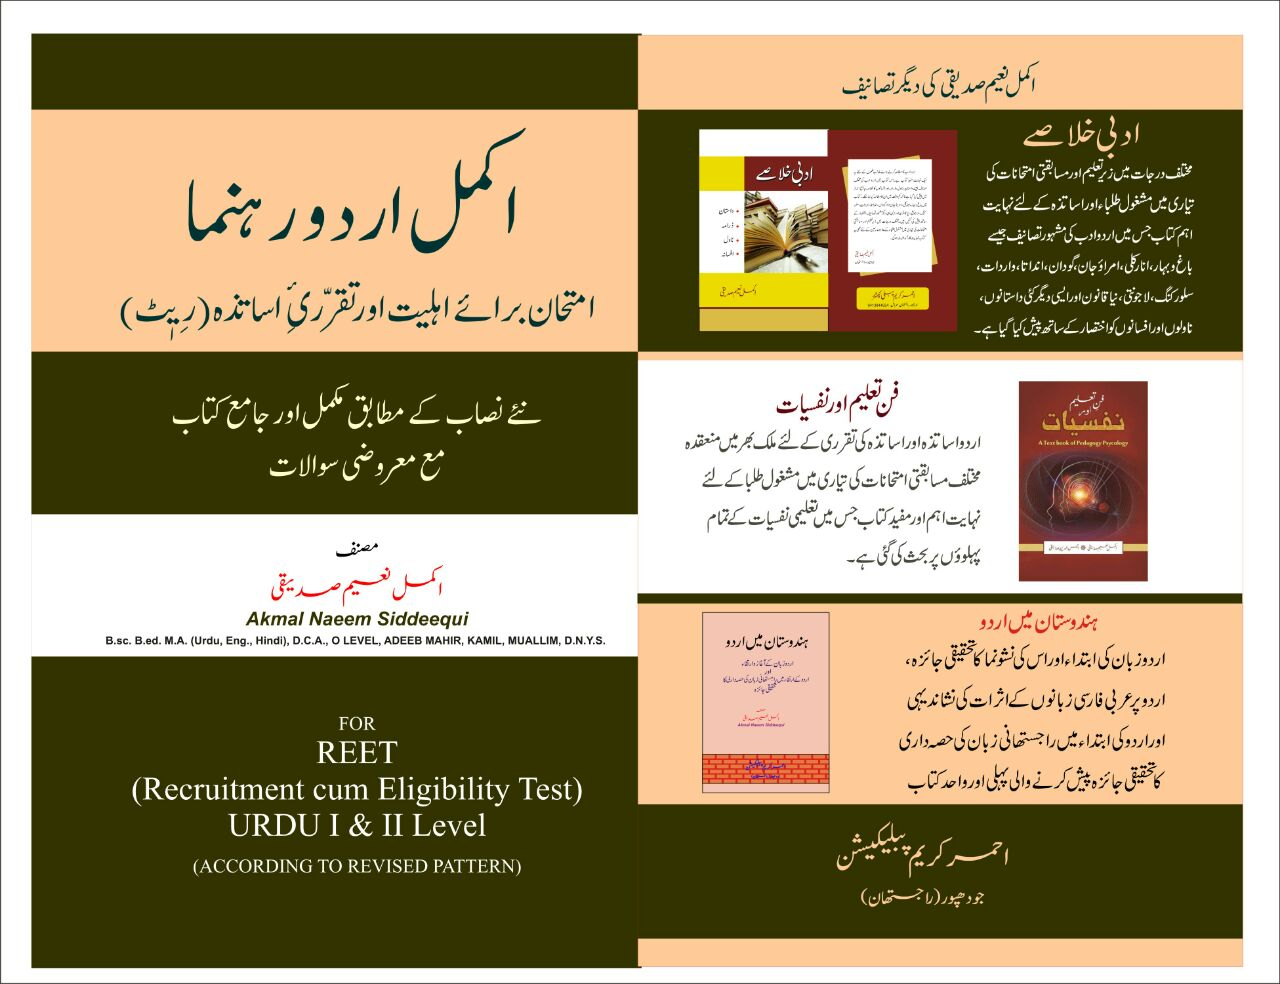 A COMPLETE URDU GUIDE FOR COMPETATIVE EXAM SEEKERS AND URDU